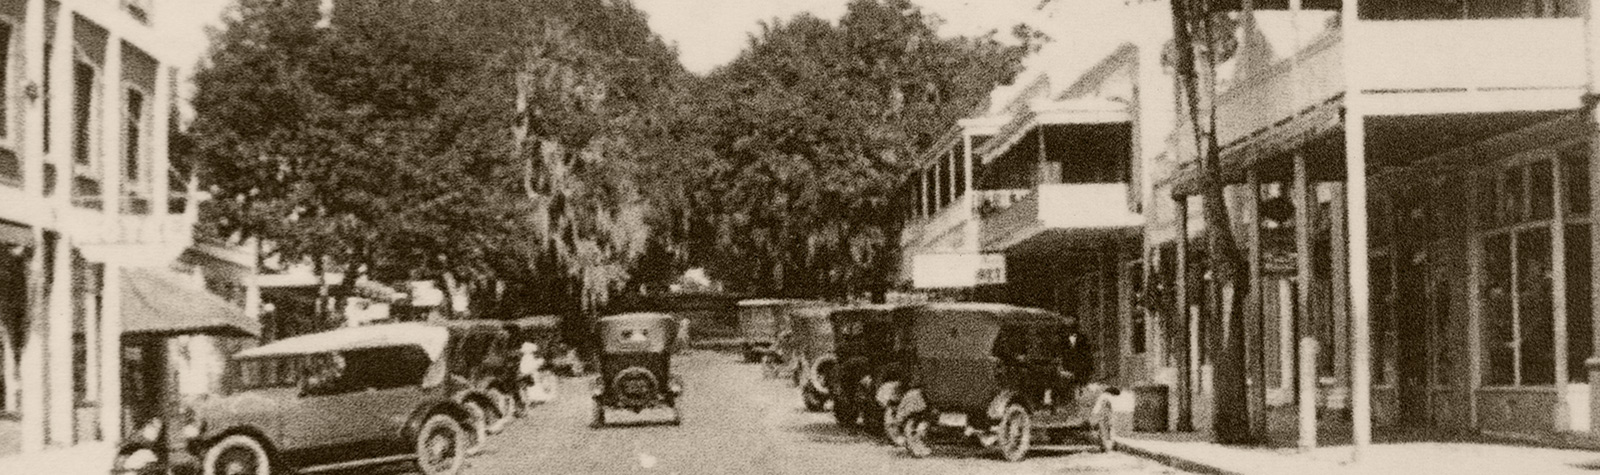 vintage photo of main street Mount Dora